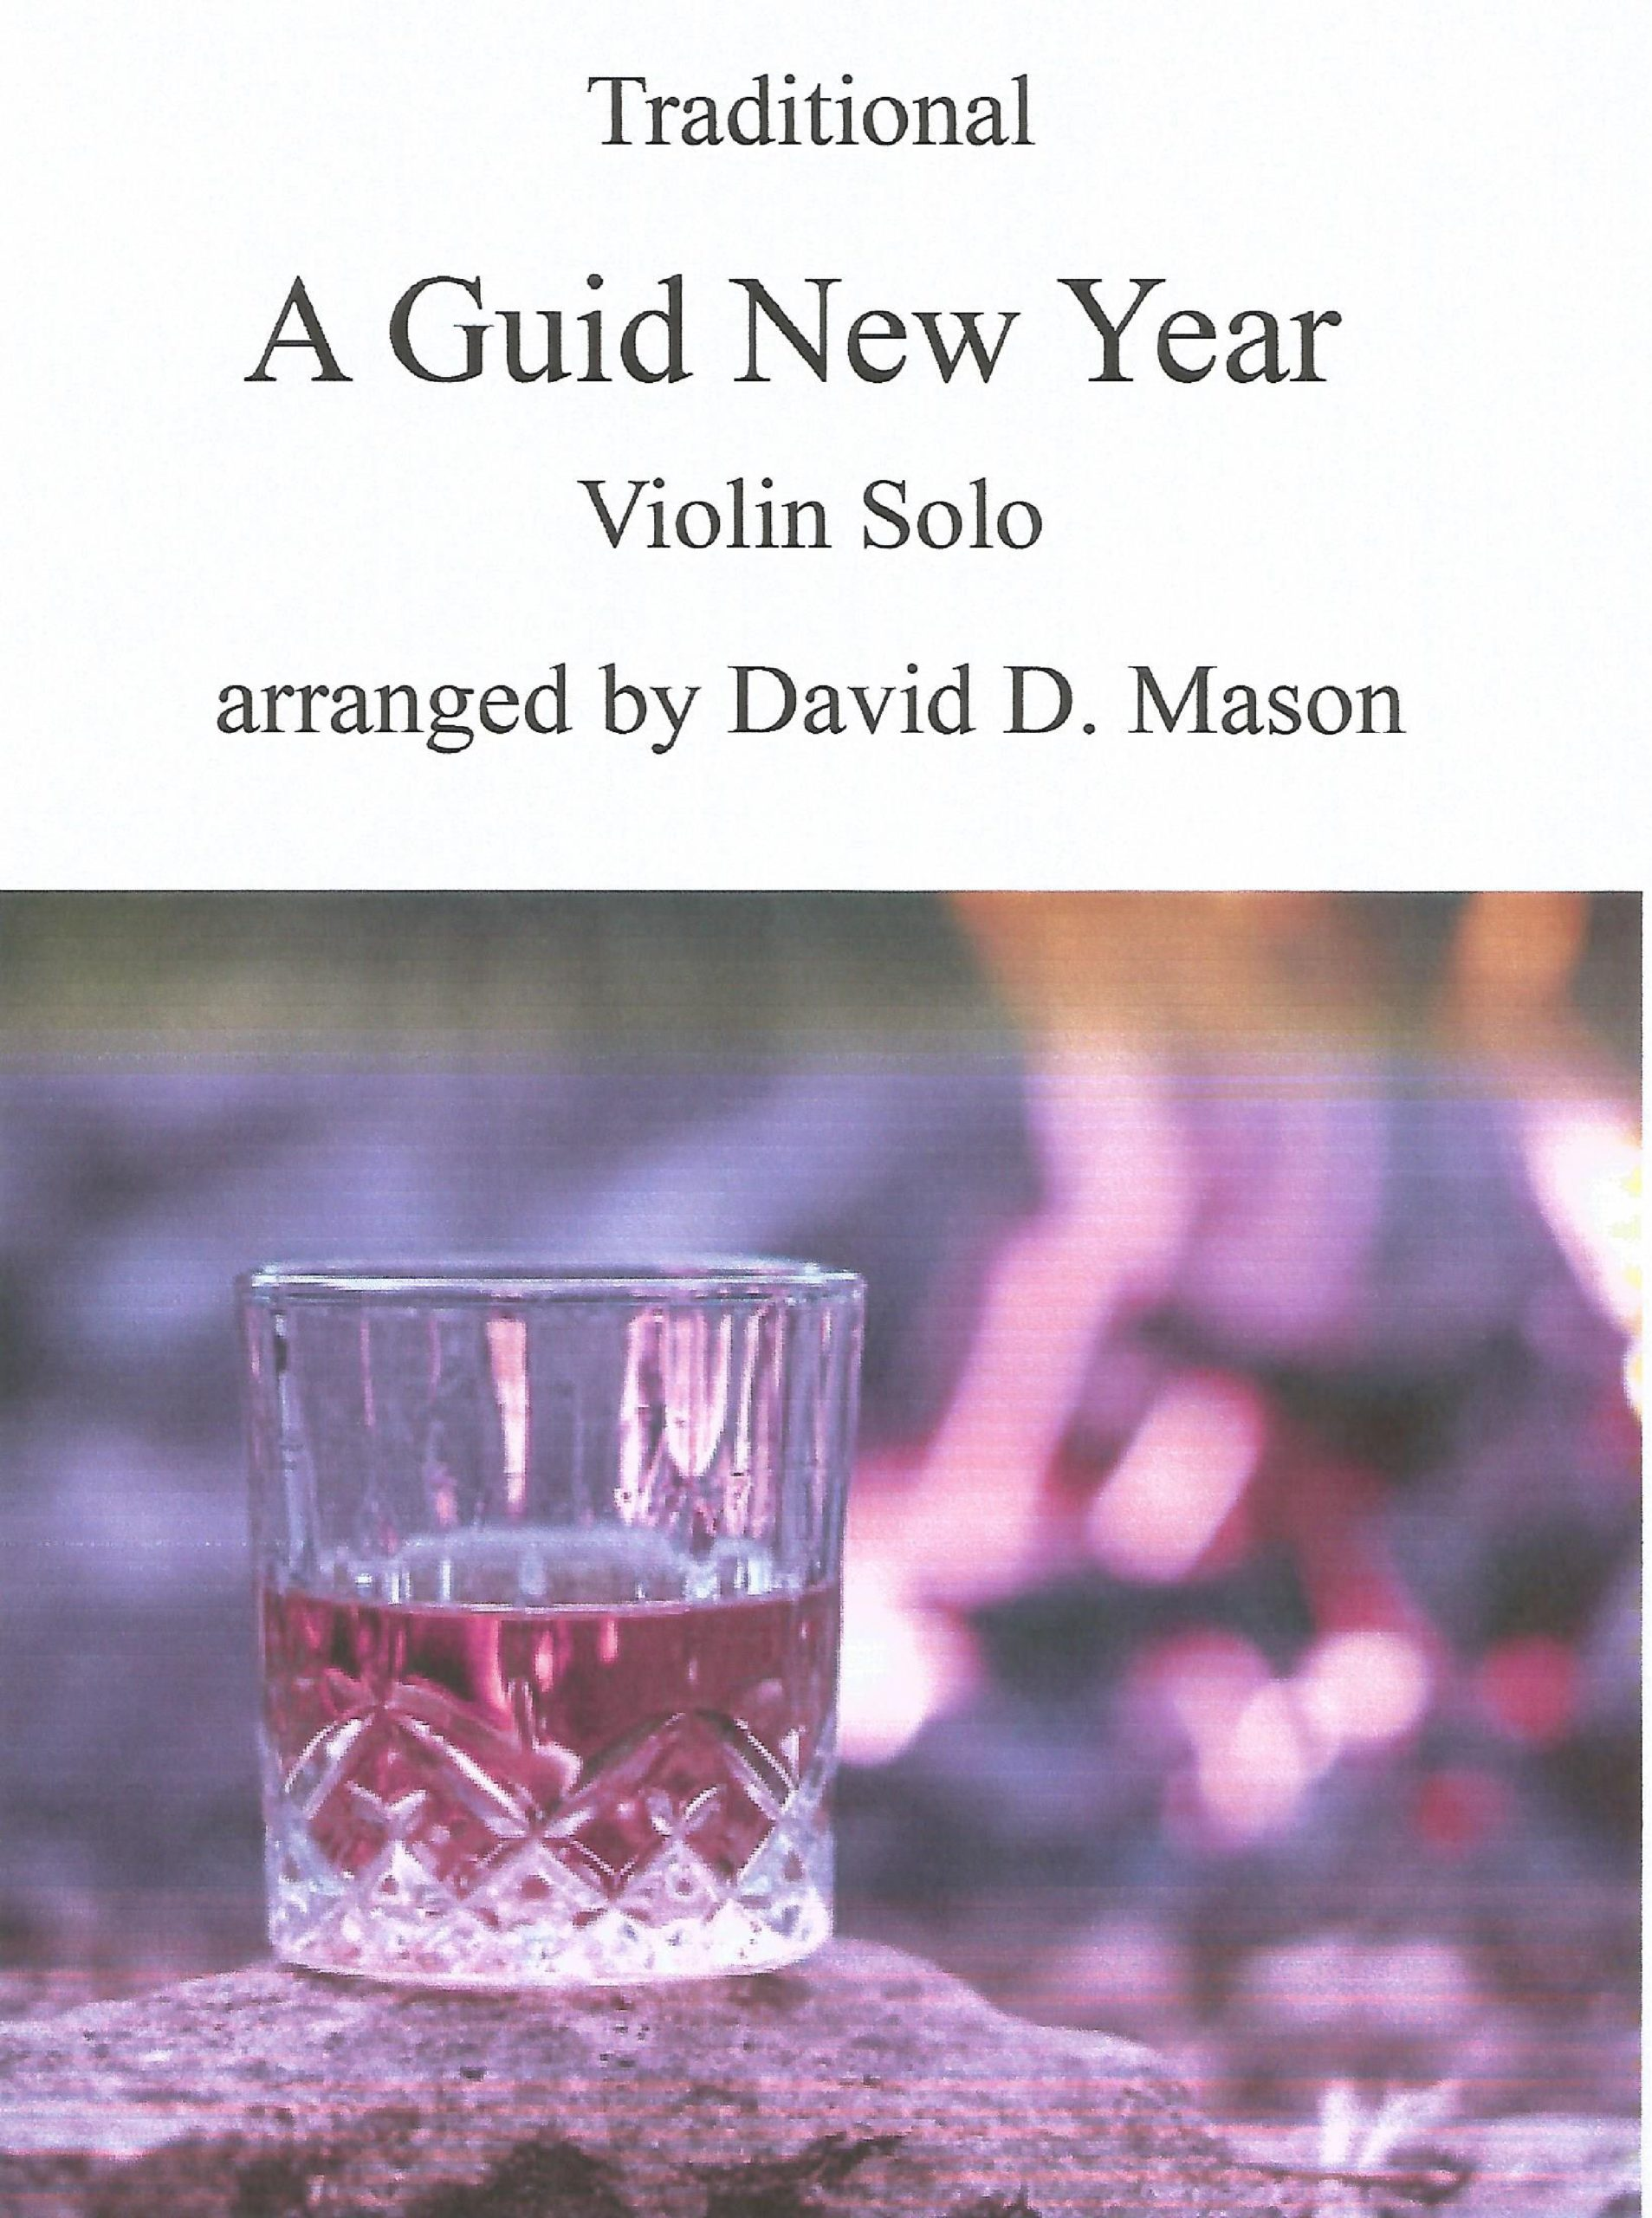 A Guid New Year – Violin Solo with Piano accompaniment